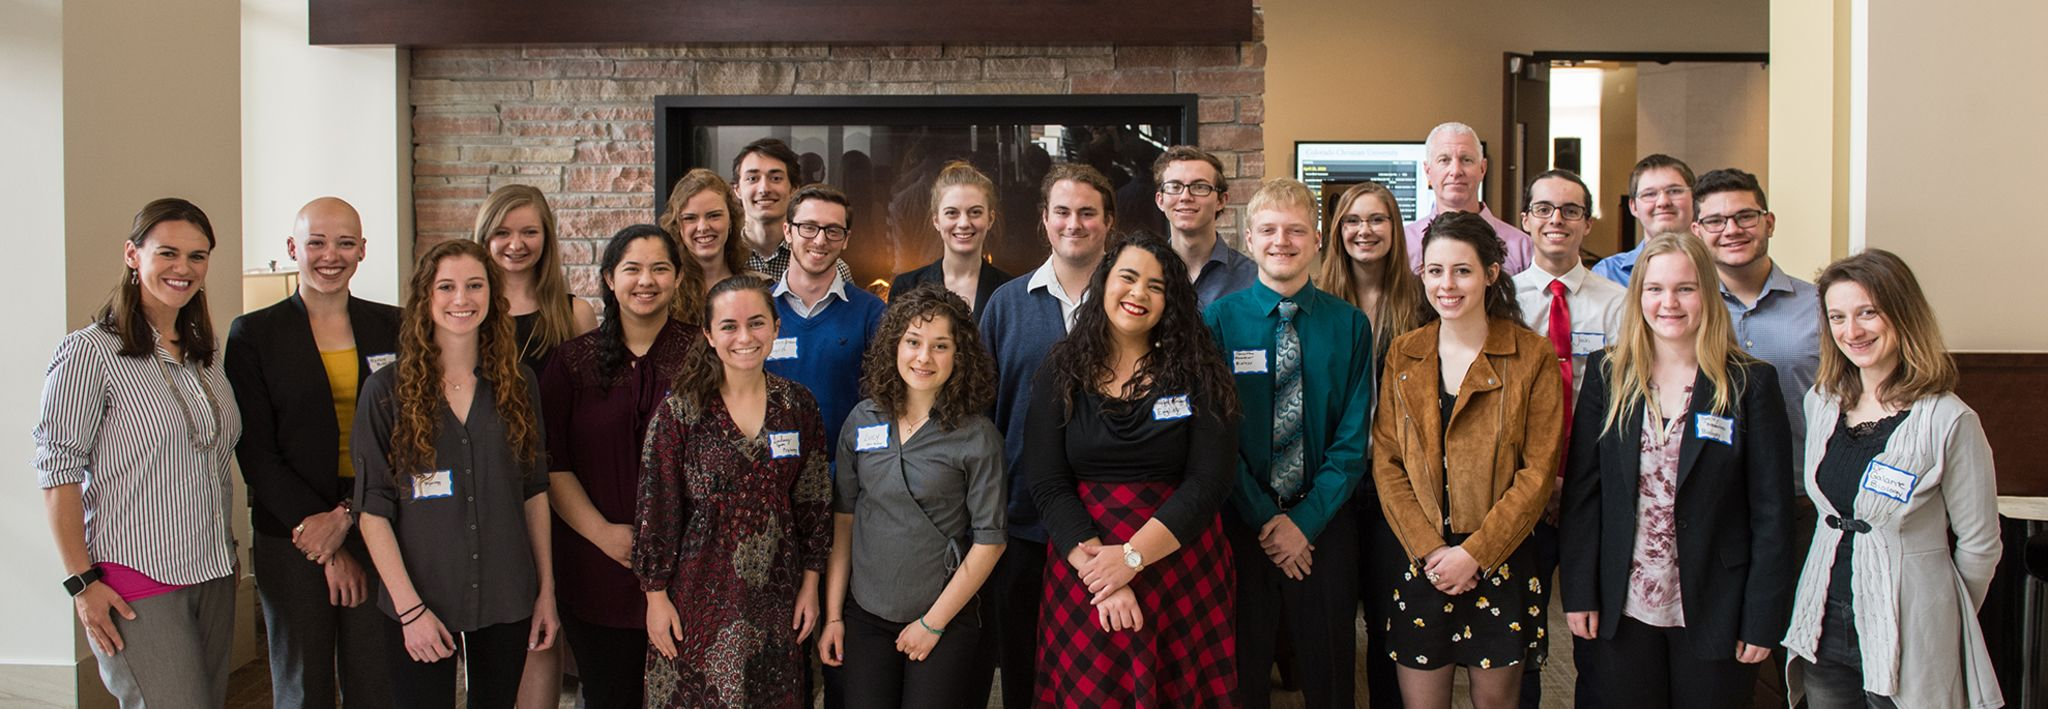 students and faculty at the annual research conference for undergraduates